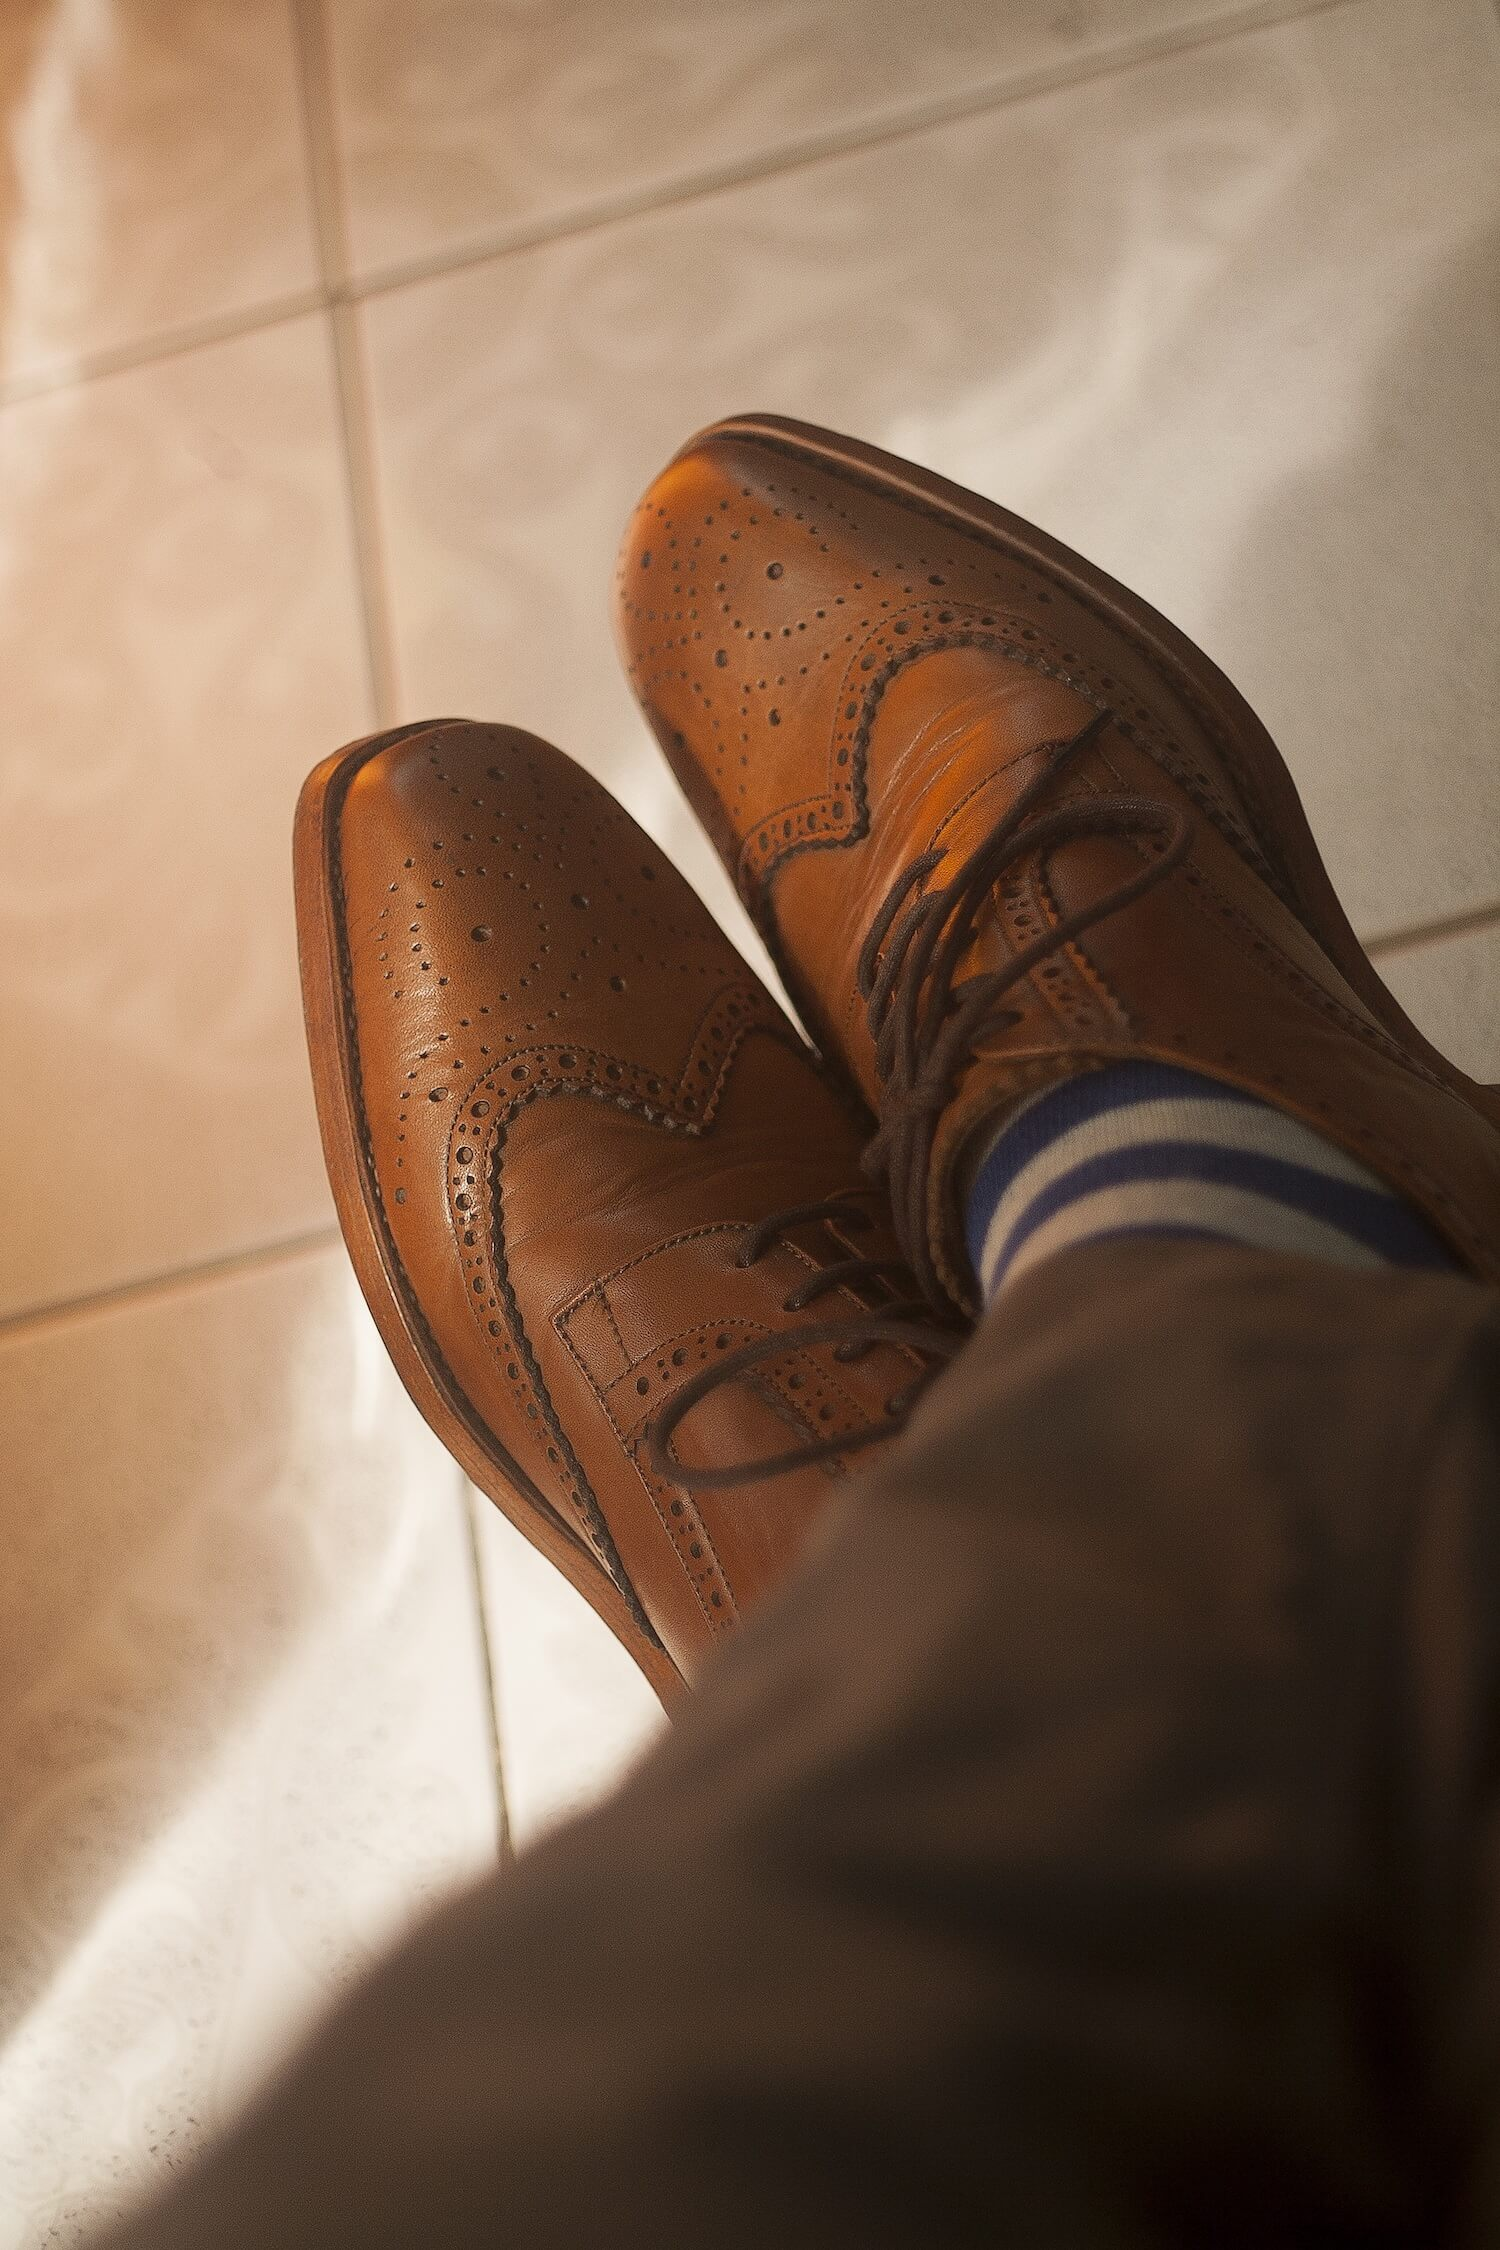 Shoe with a Wingtip Design along the toe and lots of Brogue Detailing